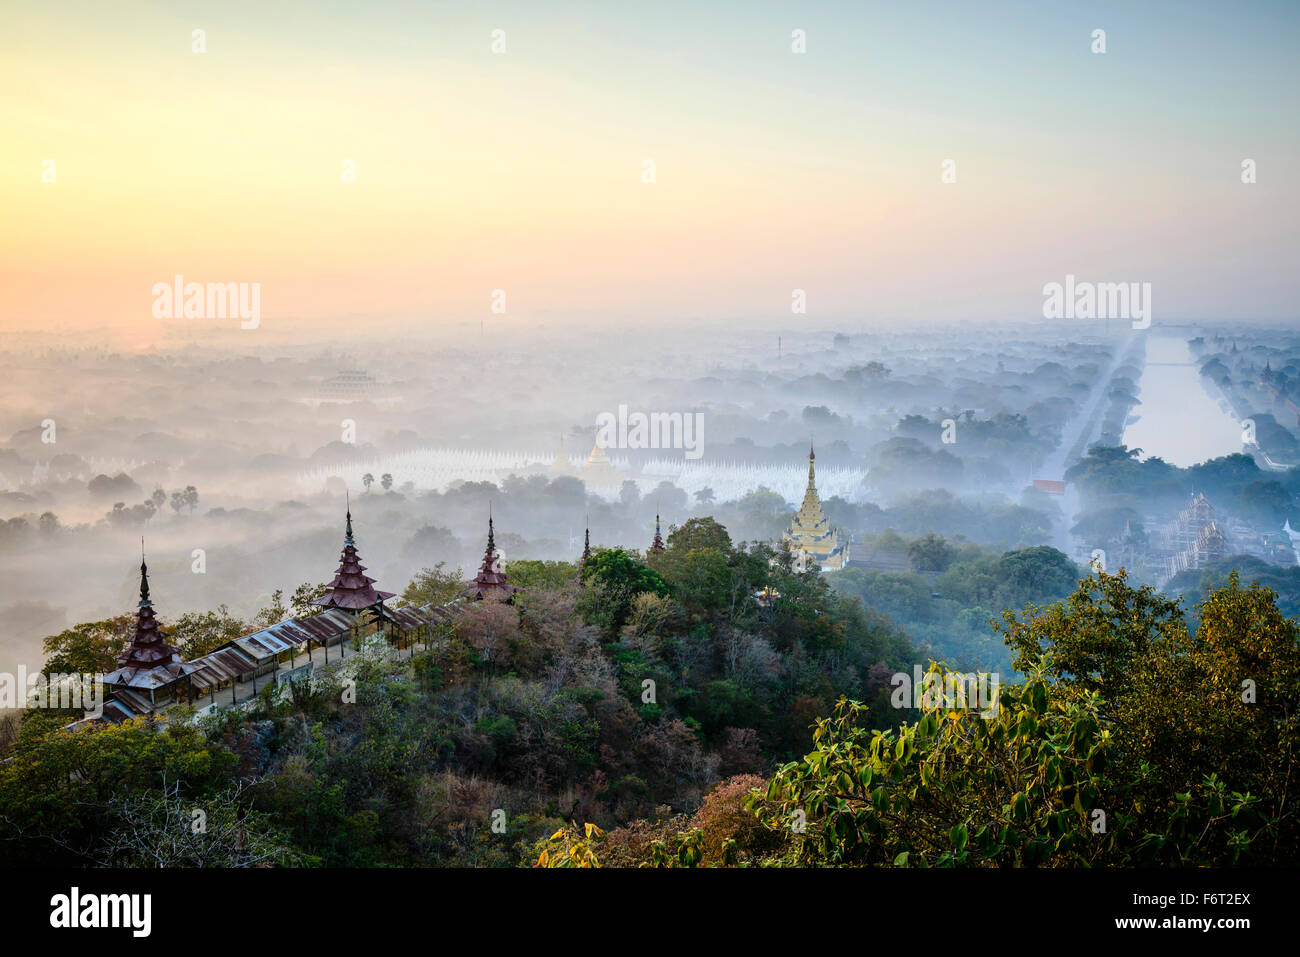 Aerial view of towers in misty landscape - Stock Image